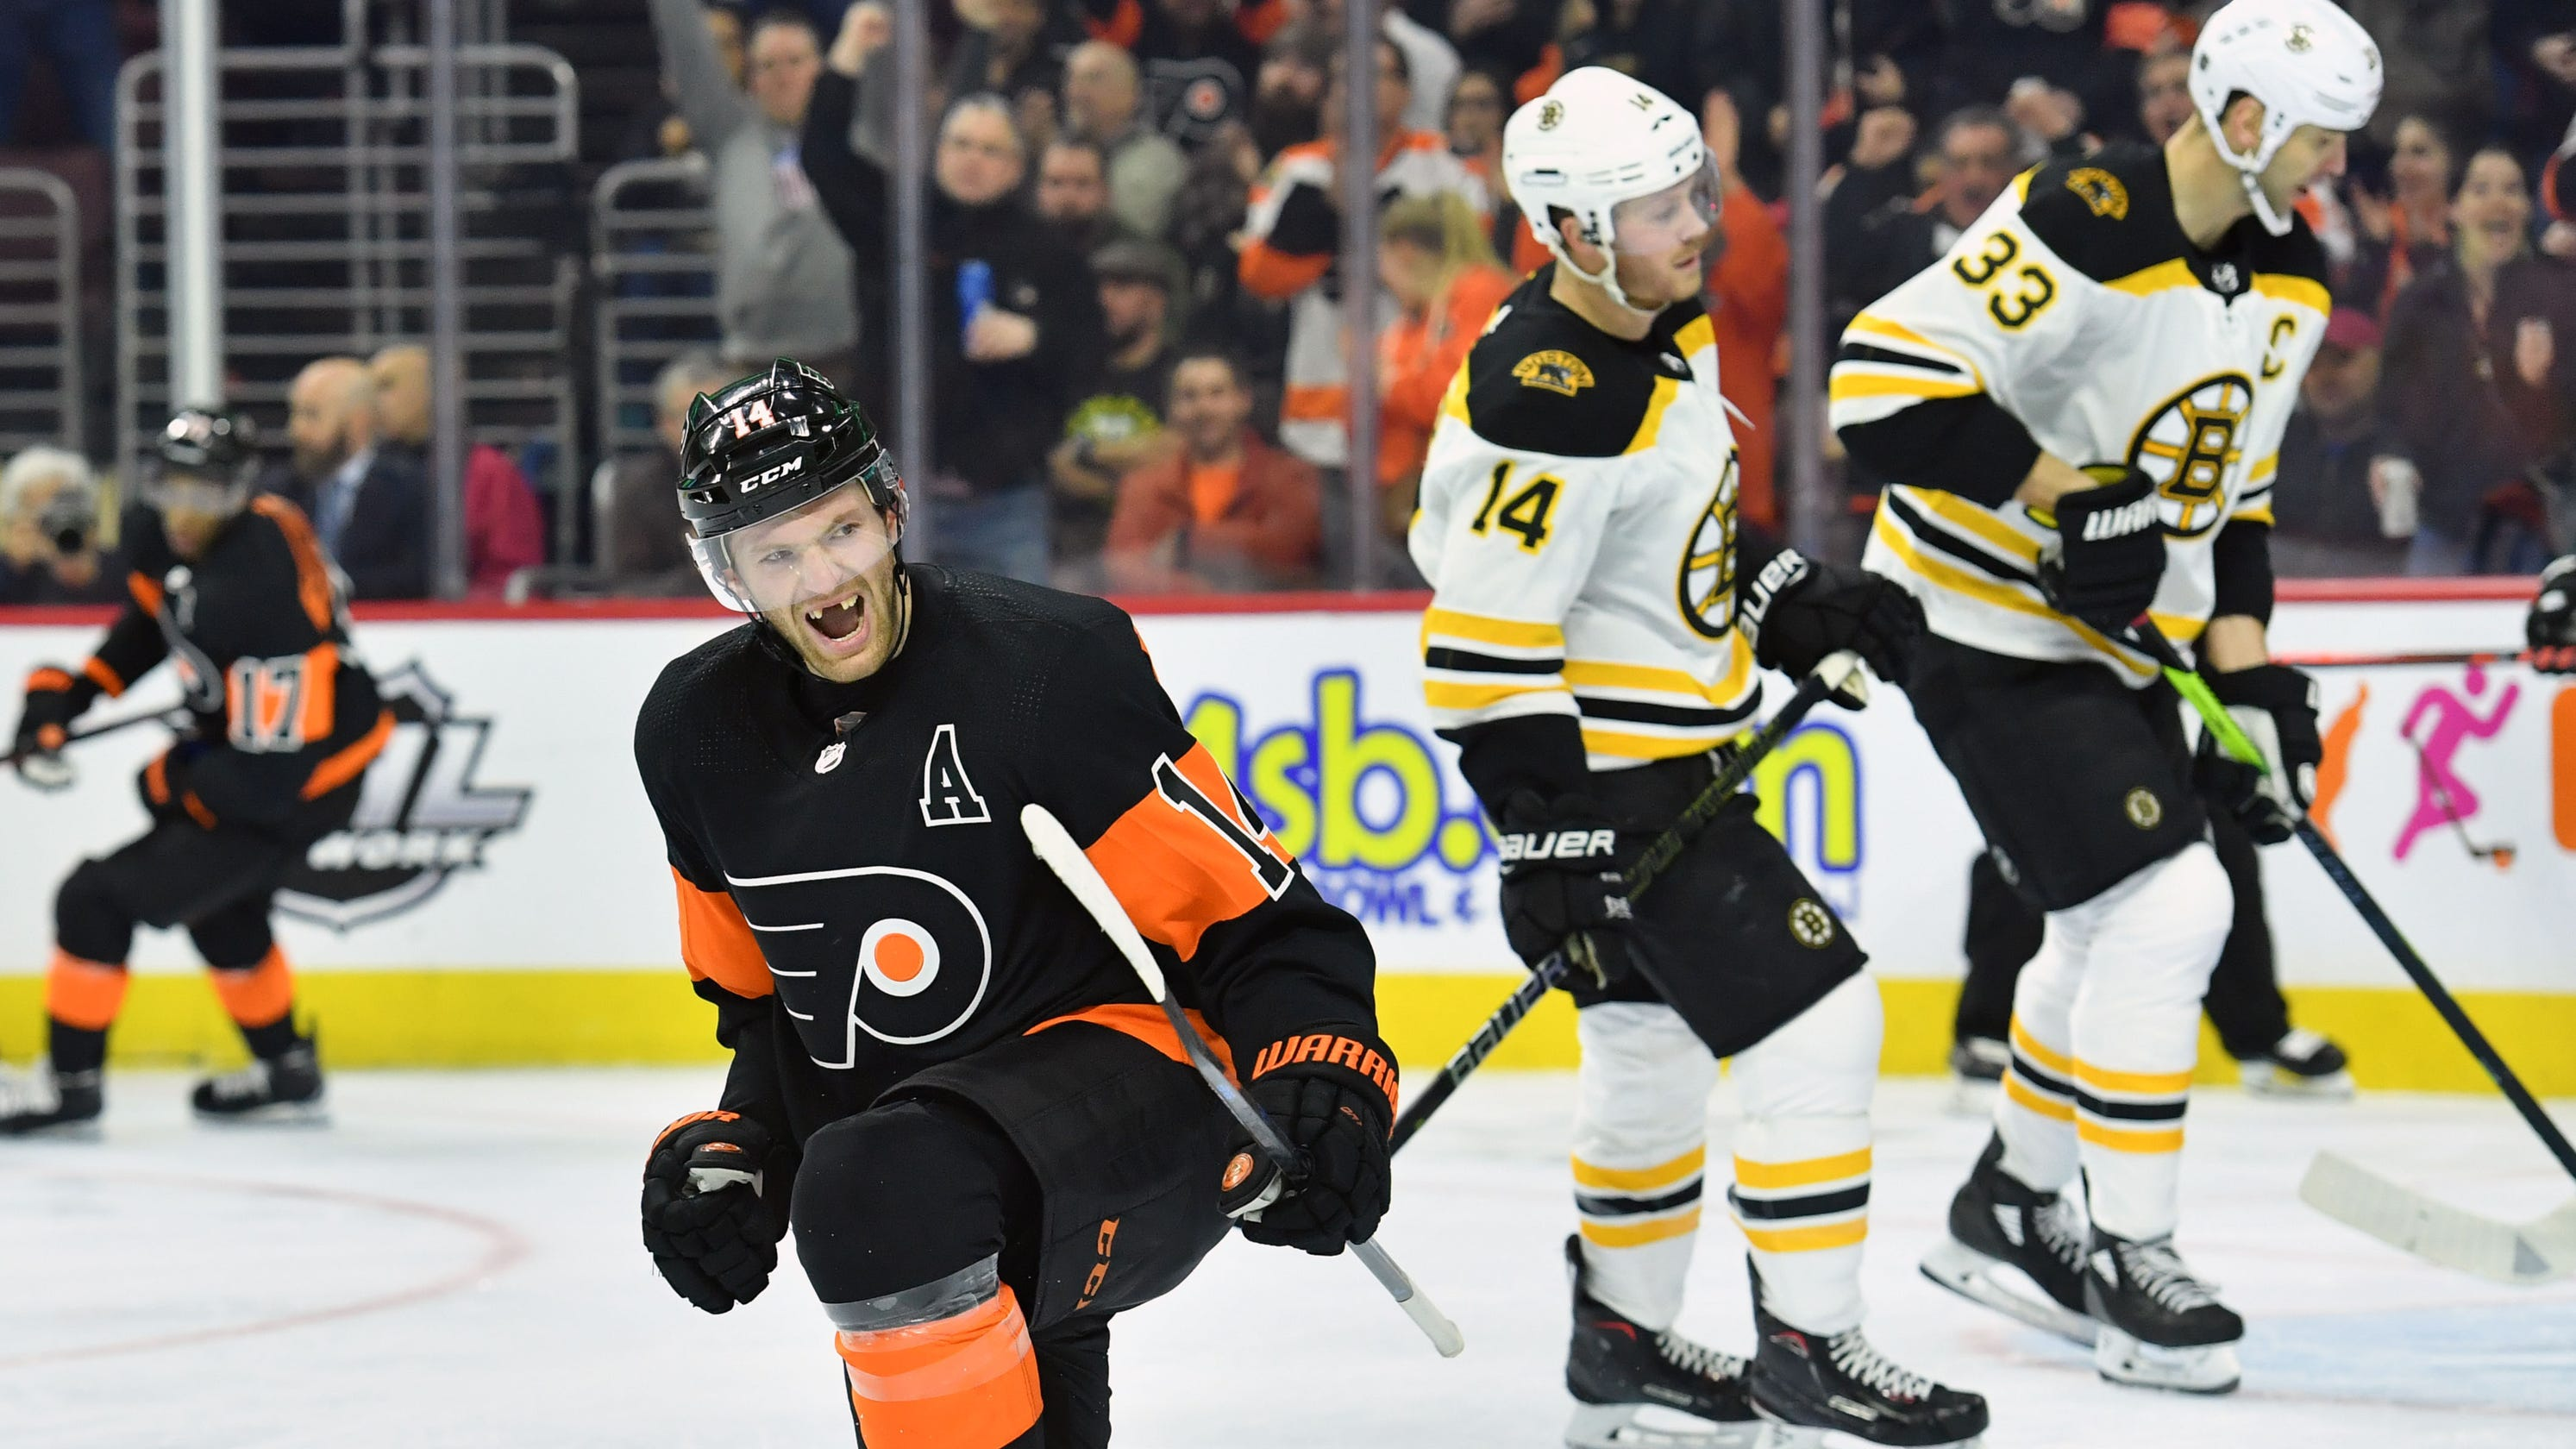 d50c4a2ca5d08 Sean Couturier nets first regular-season hat trick as last-place Flyers  upend Bruins